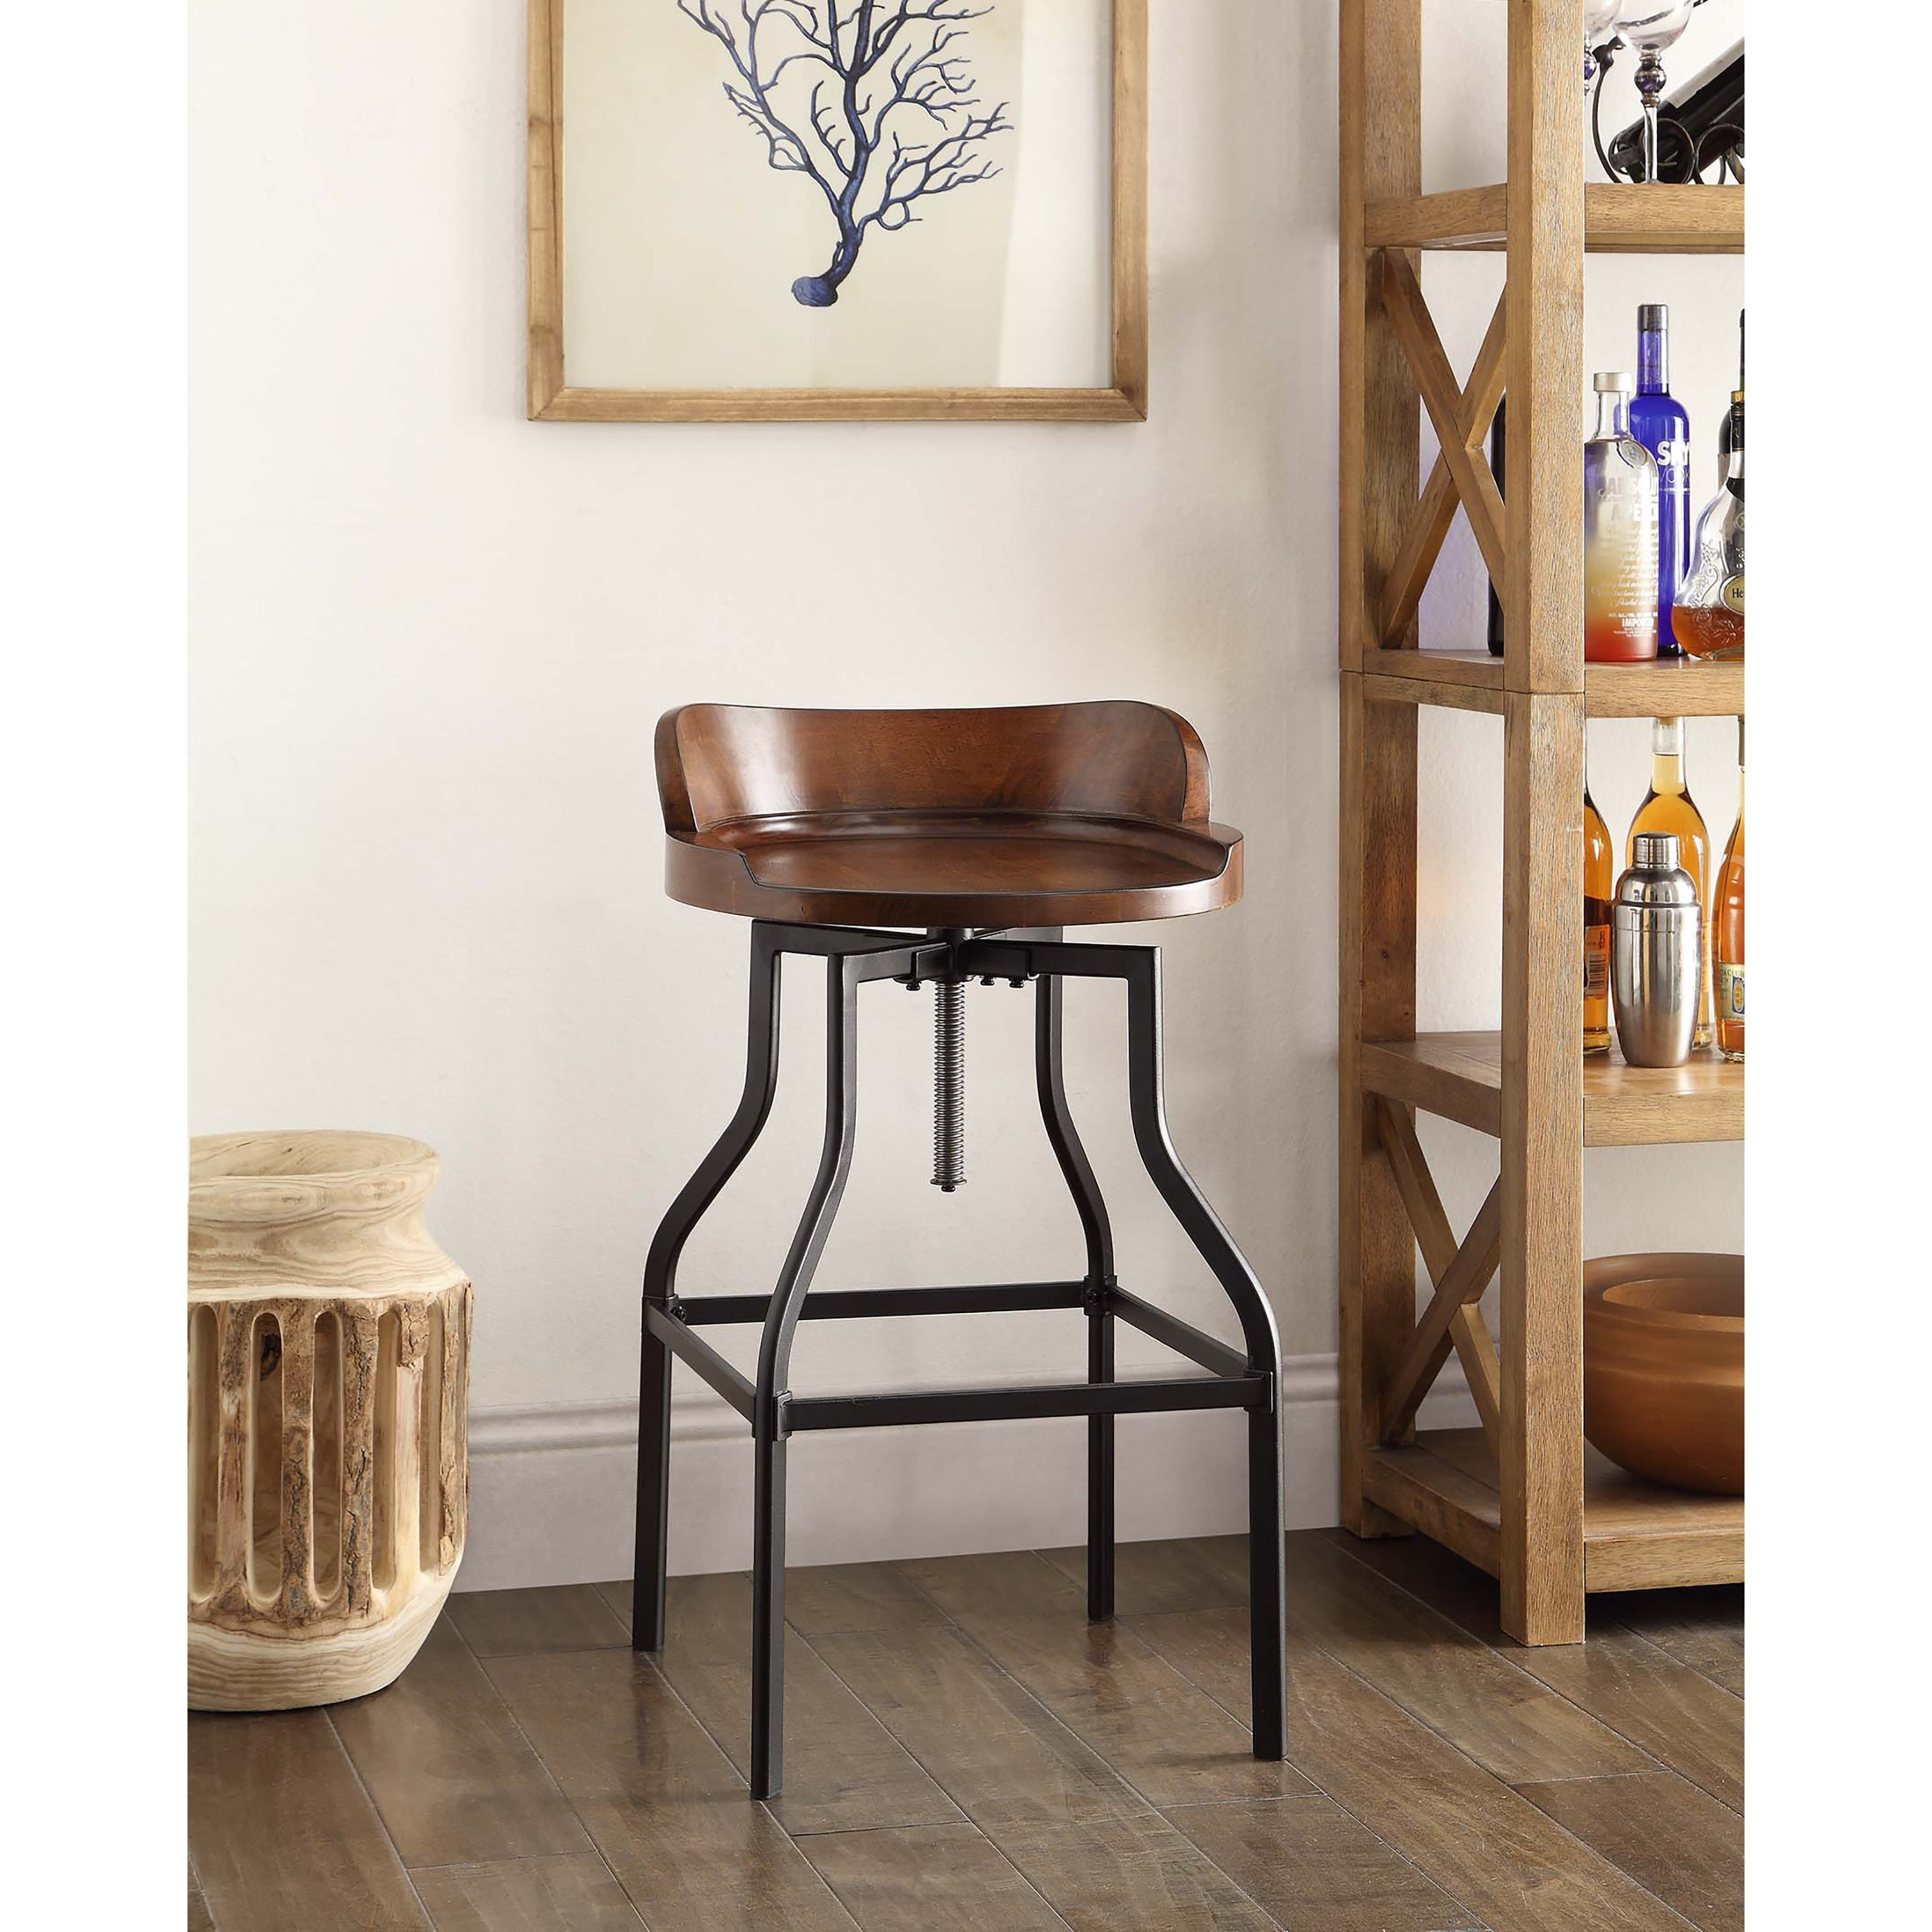 Shop The Gray Barn Horseshoe Wood And Metal Bar Stool